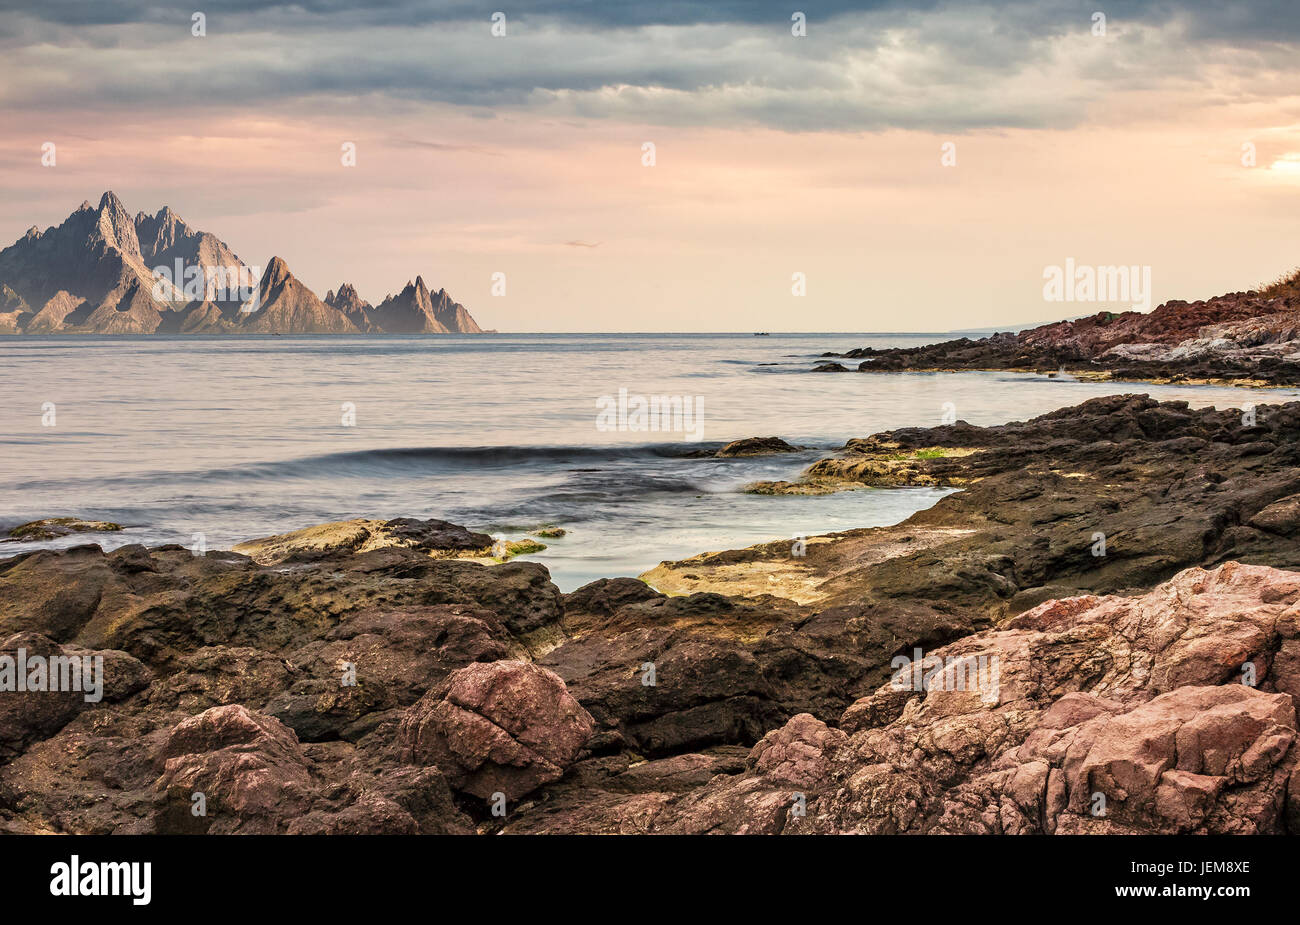 seascape with rocky coast and mountain ridge with high peaks. composite landscape with cloudy sky at menacing sunrise - Stock Image